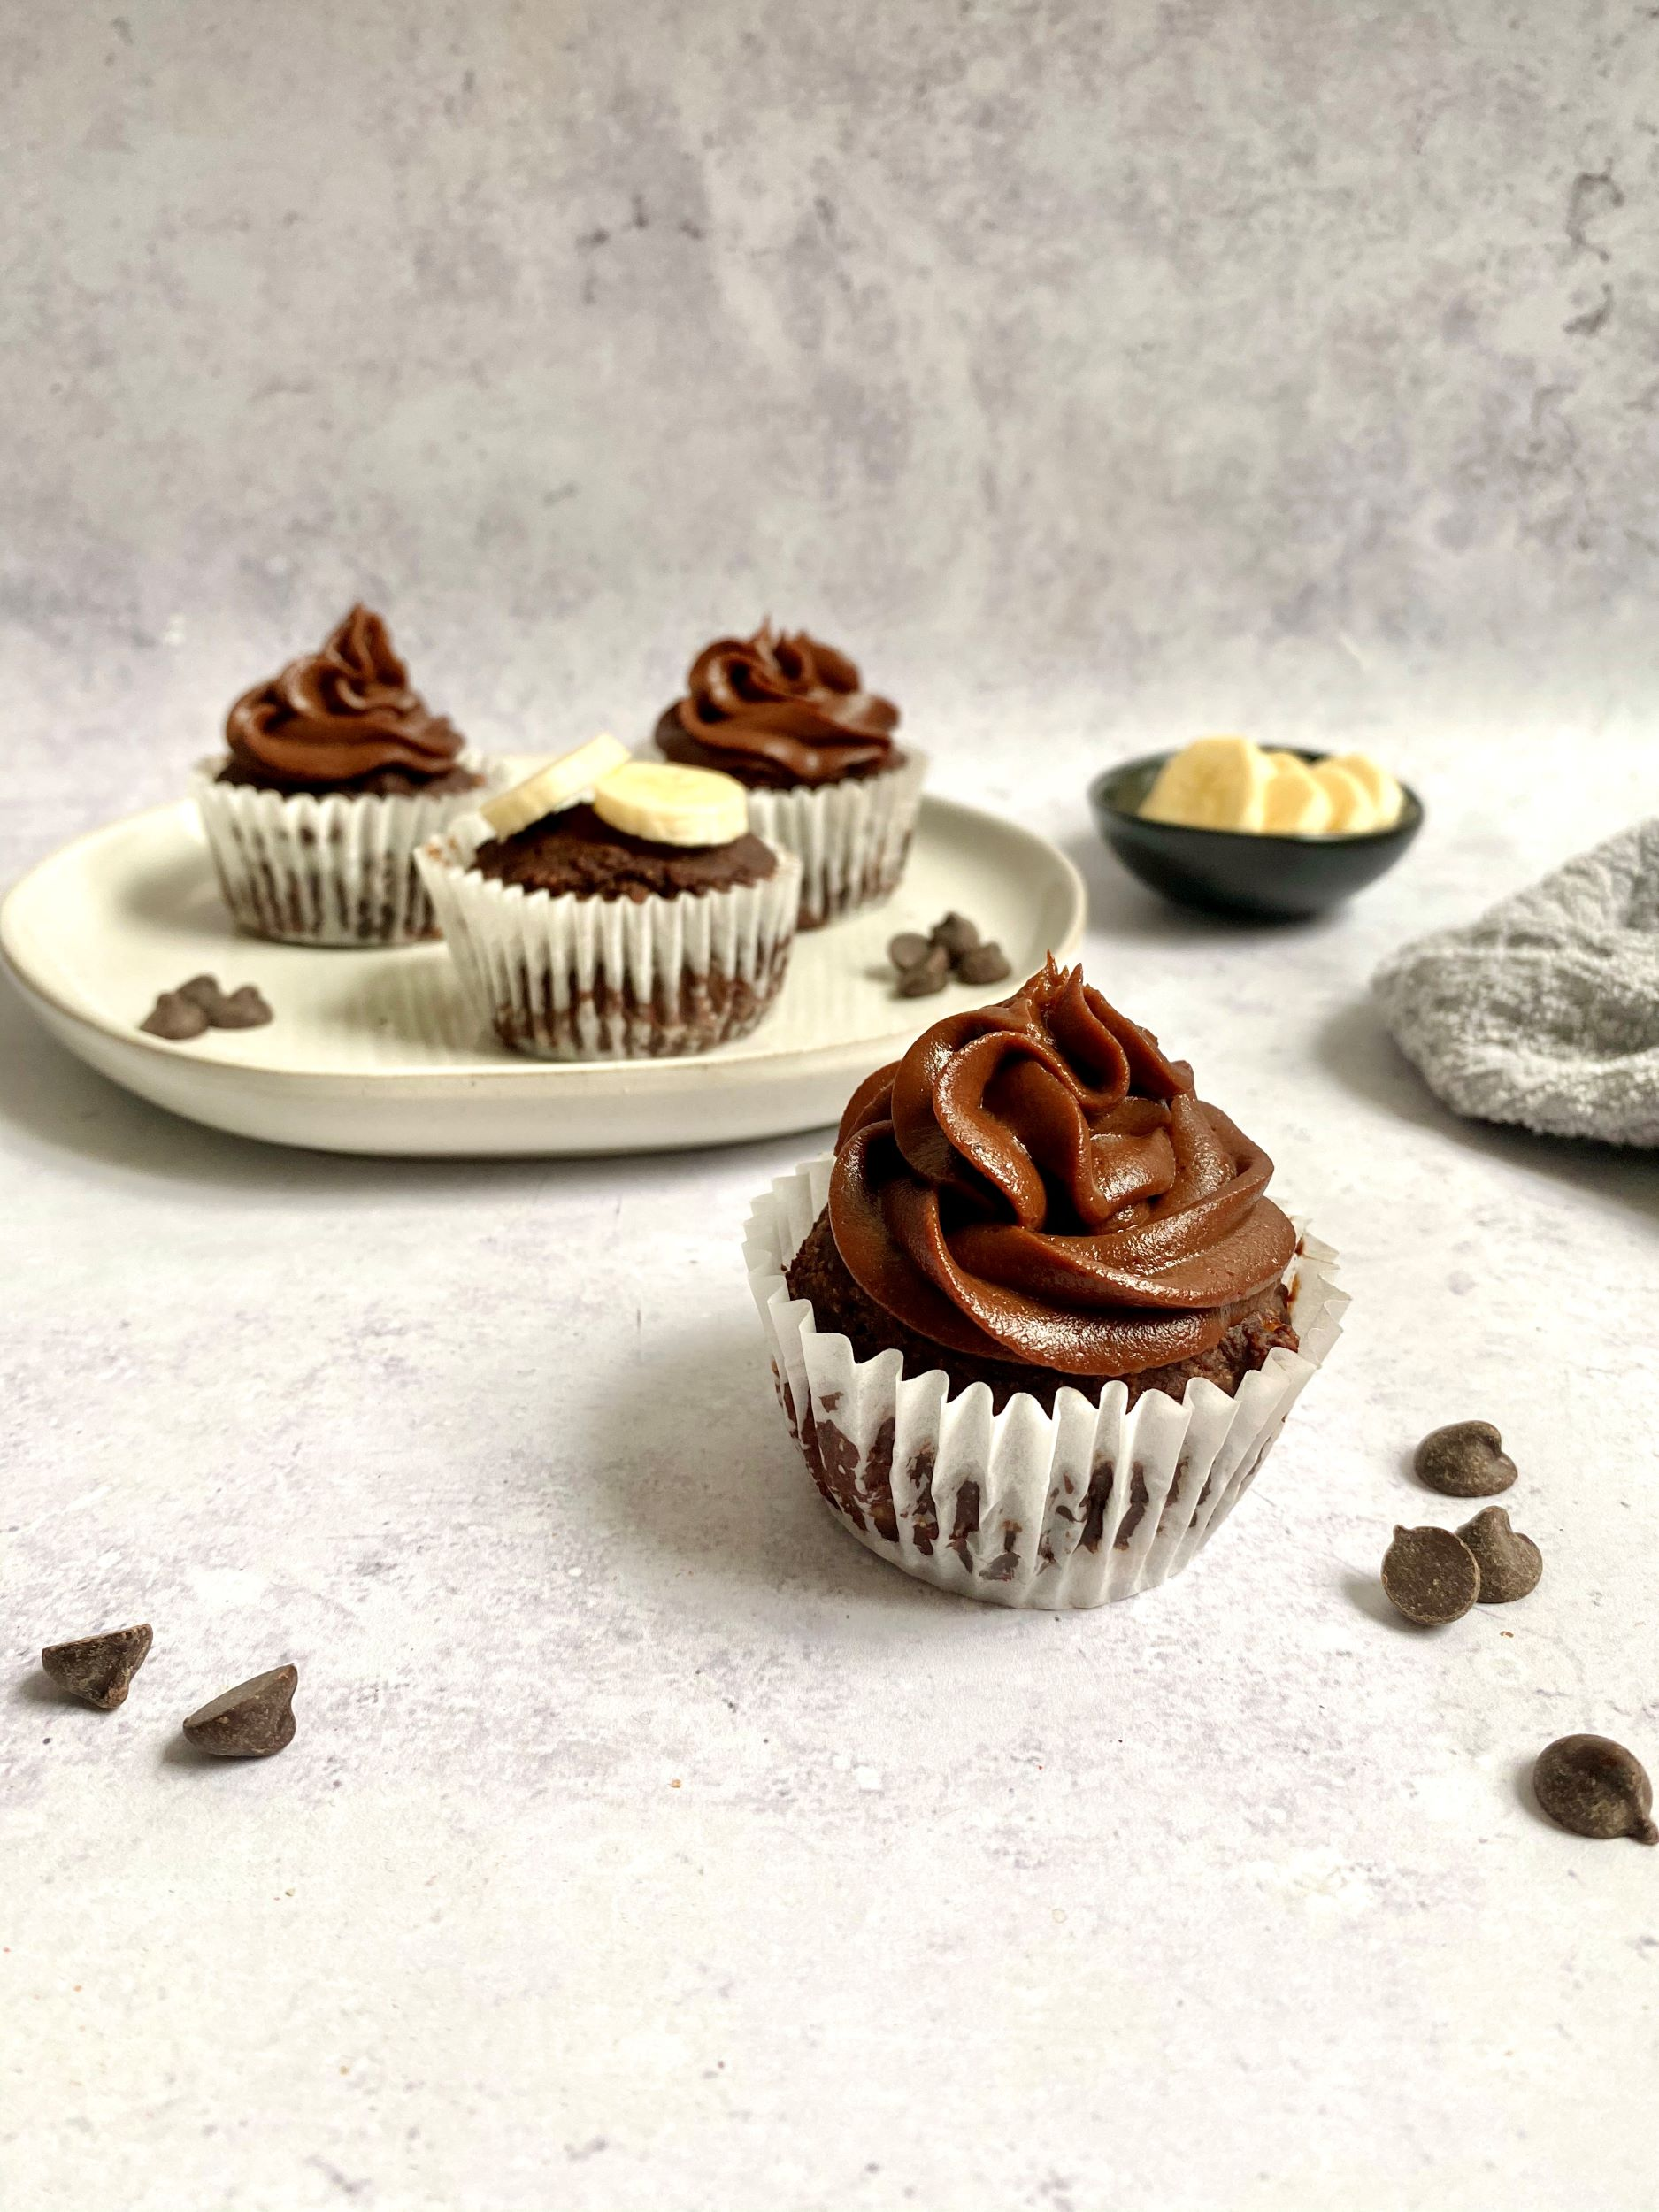 Plant-Based Chocolate Chip Muffins with Chocolate Frosting